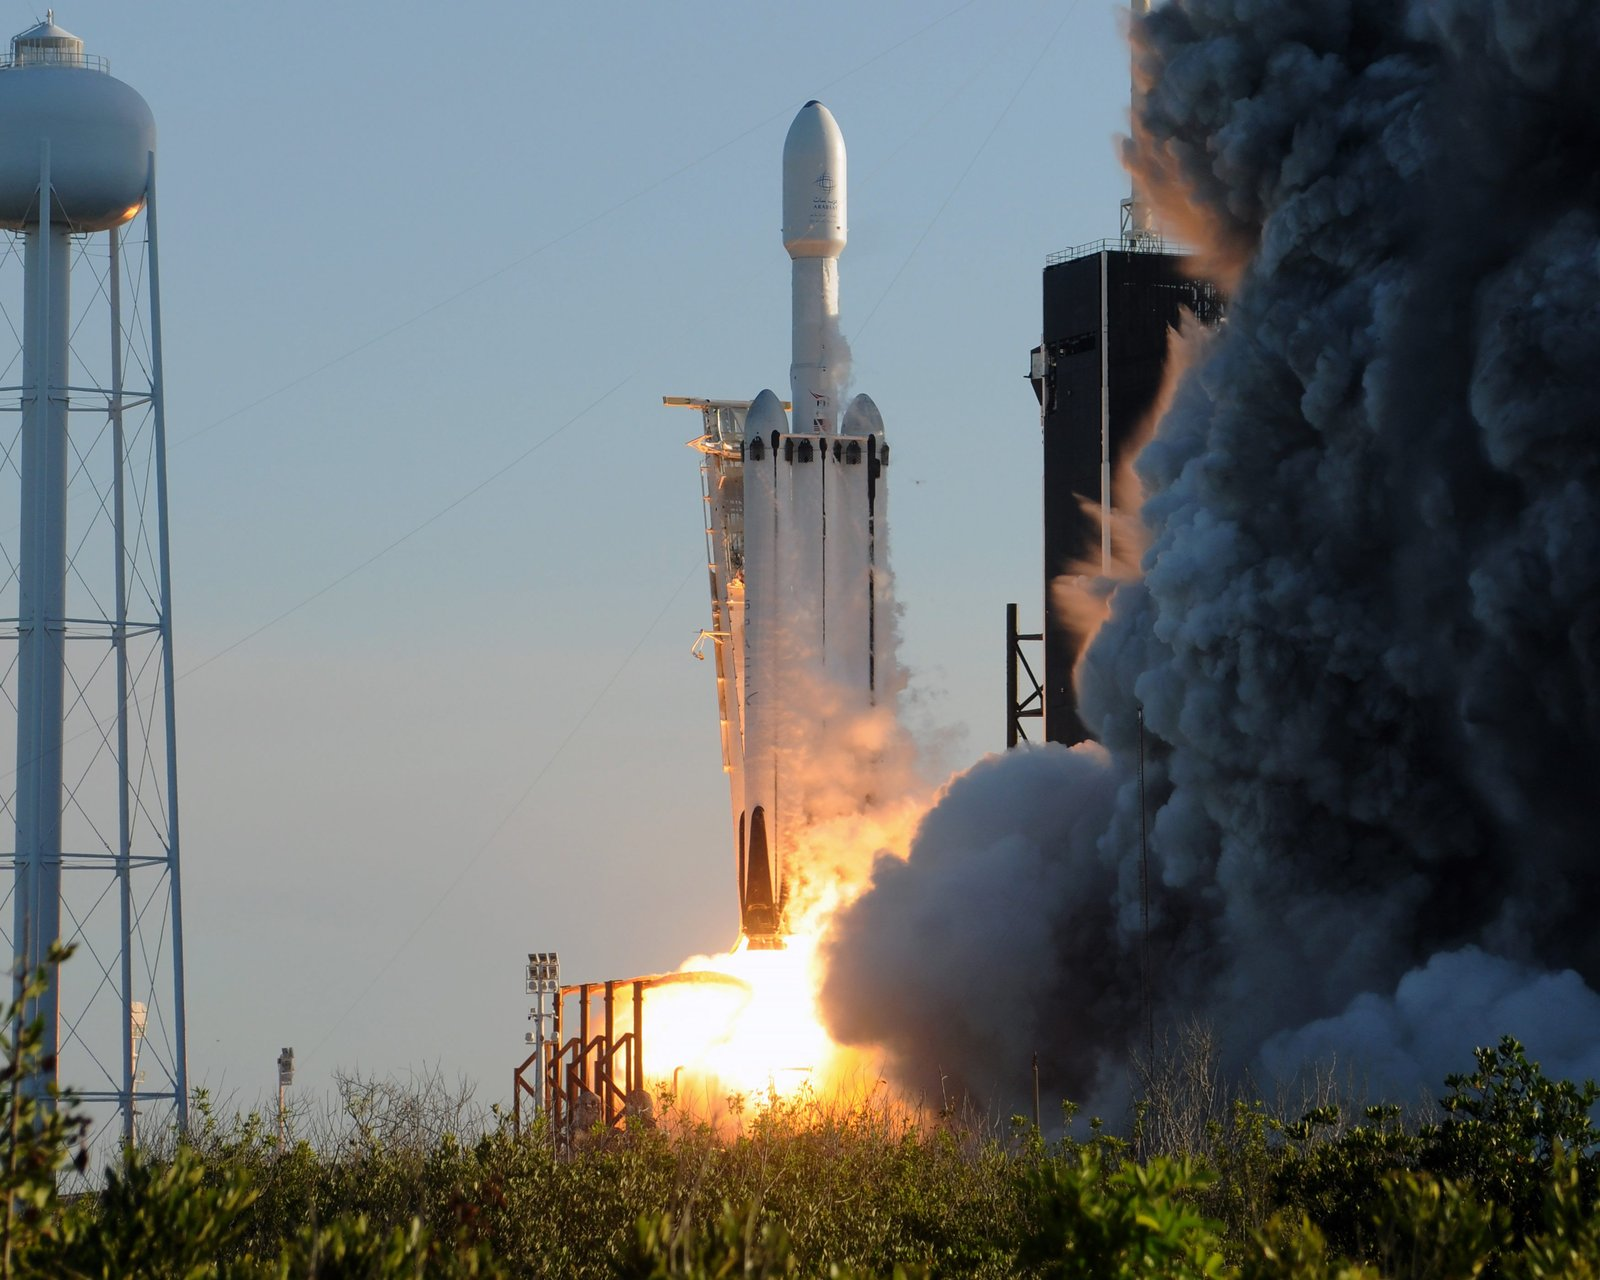 spacex falcon heavy launch today - HD1600×1280